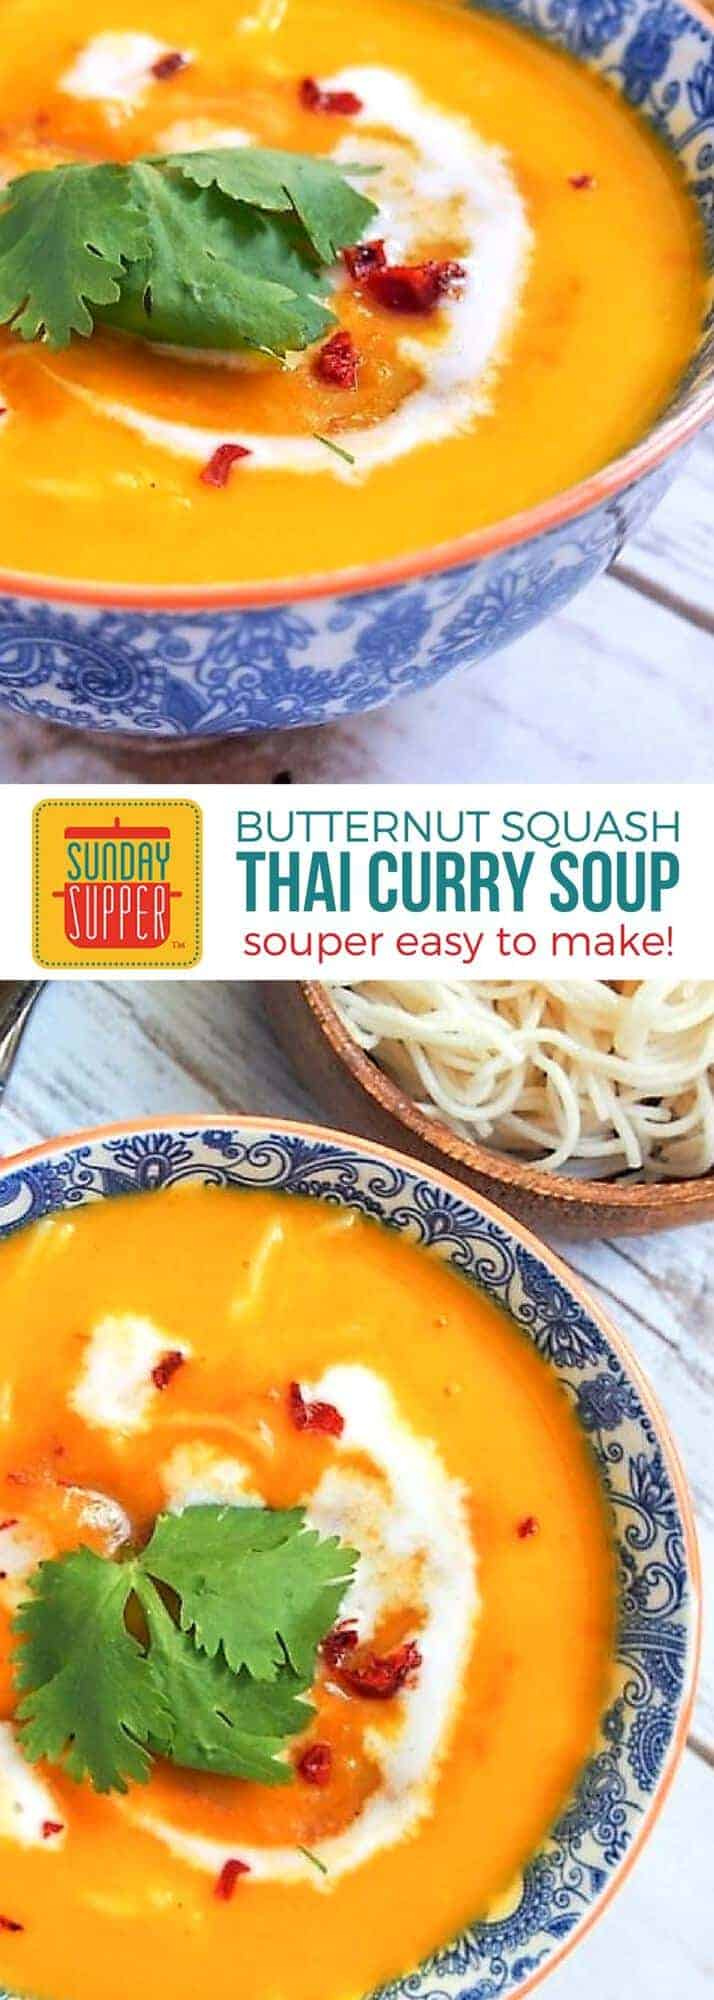 Thai Squash Soup is comfort food to warm your soul! This easy recipe has silky smooth butternut squash kicked up a notch with Thai curry flavor. A great big hug in a bowl your family with love! #SundaySupper #ComfortFoodRecipe #ThaiSquashSoup